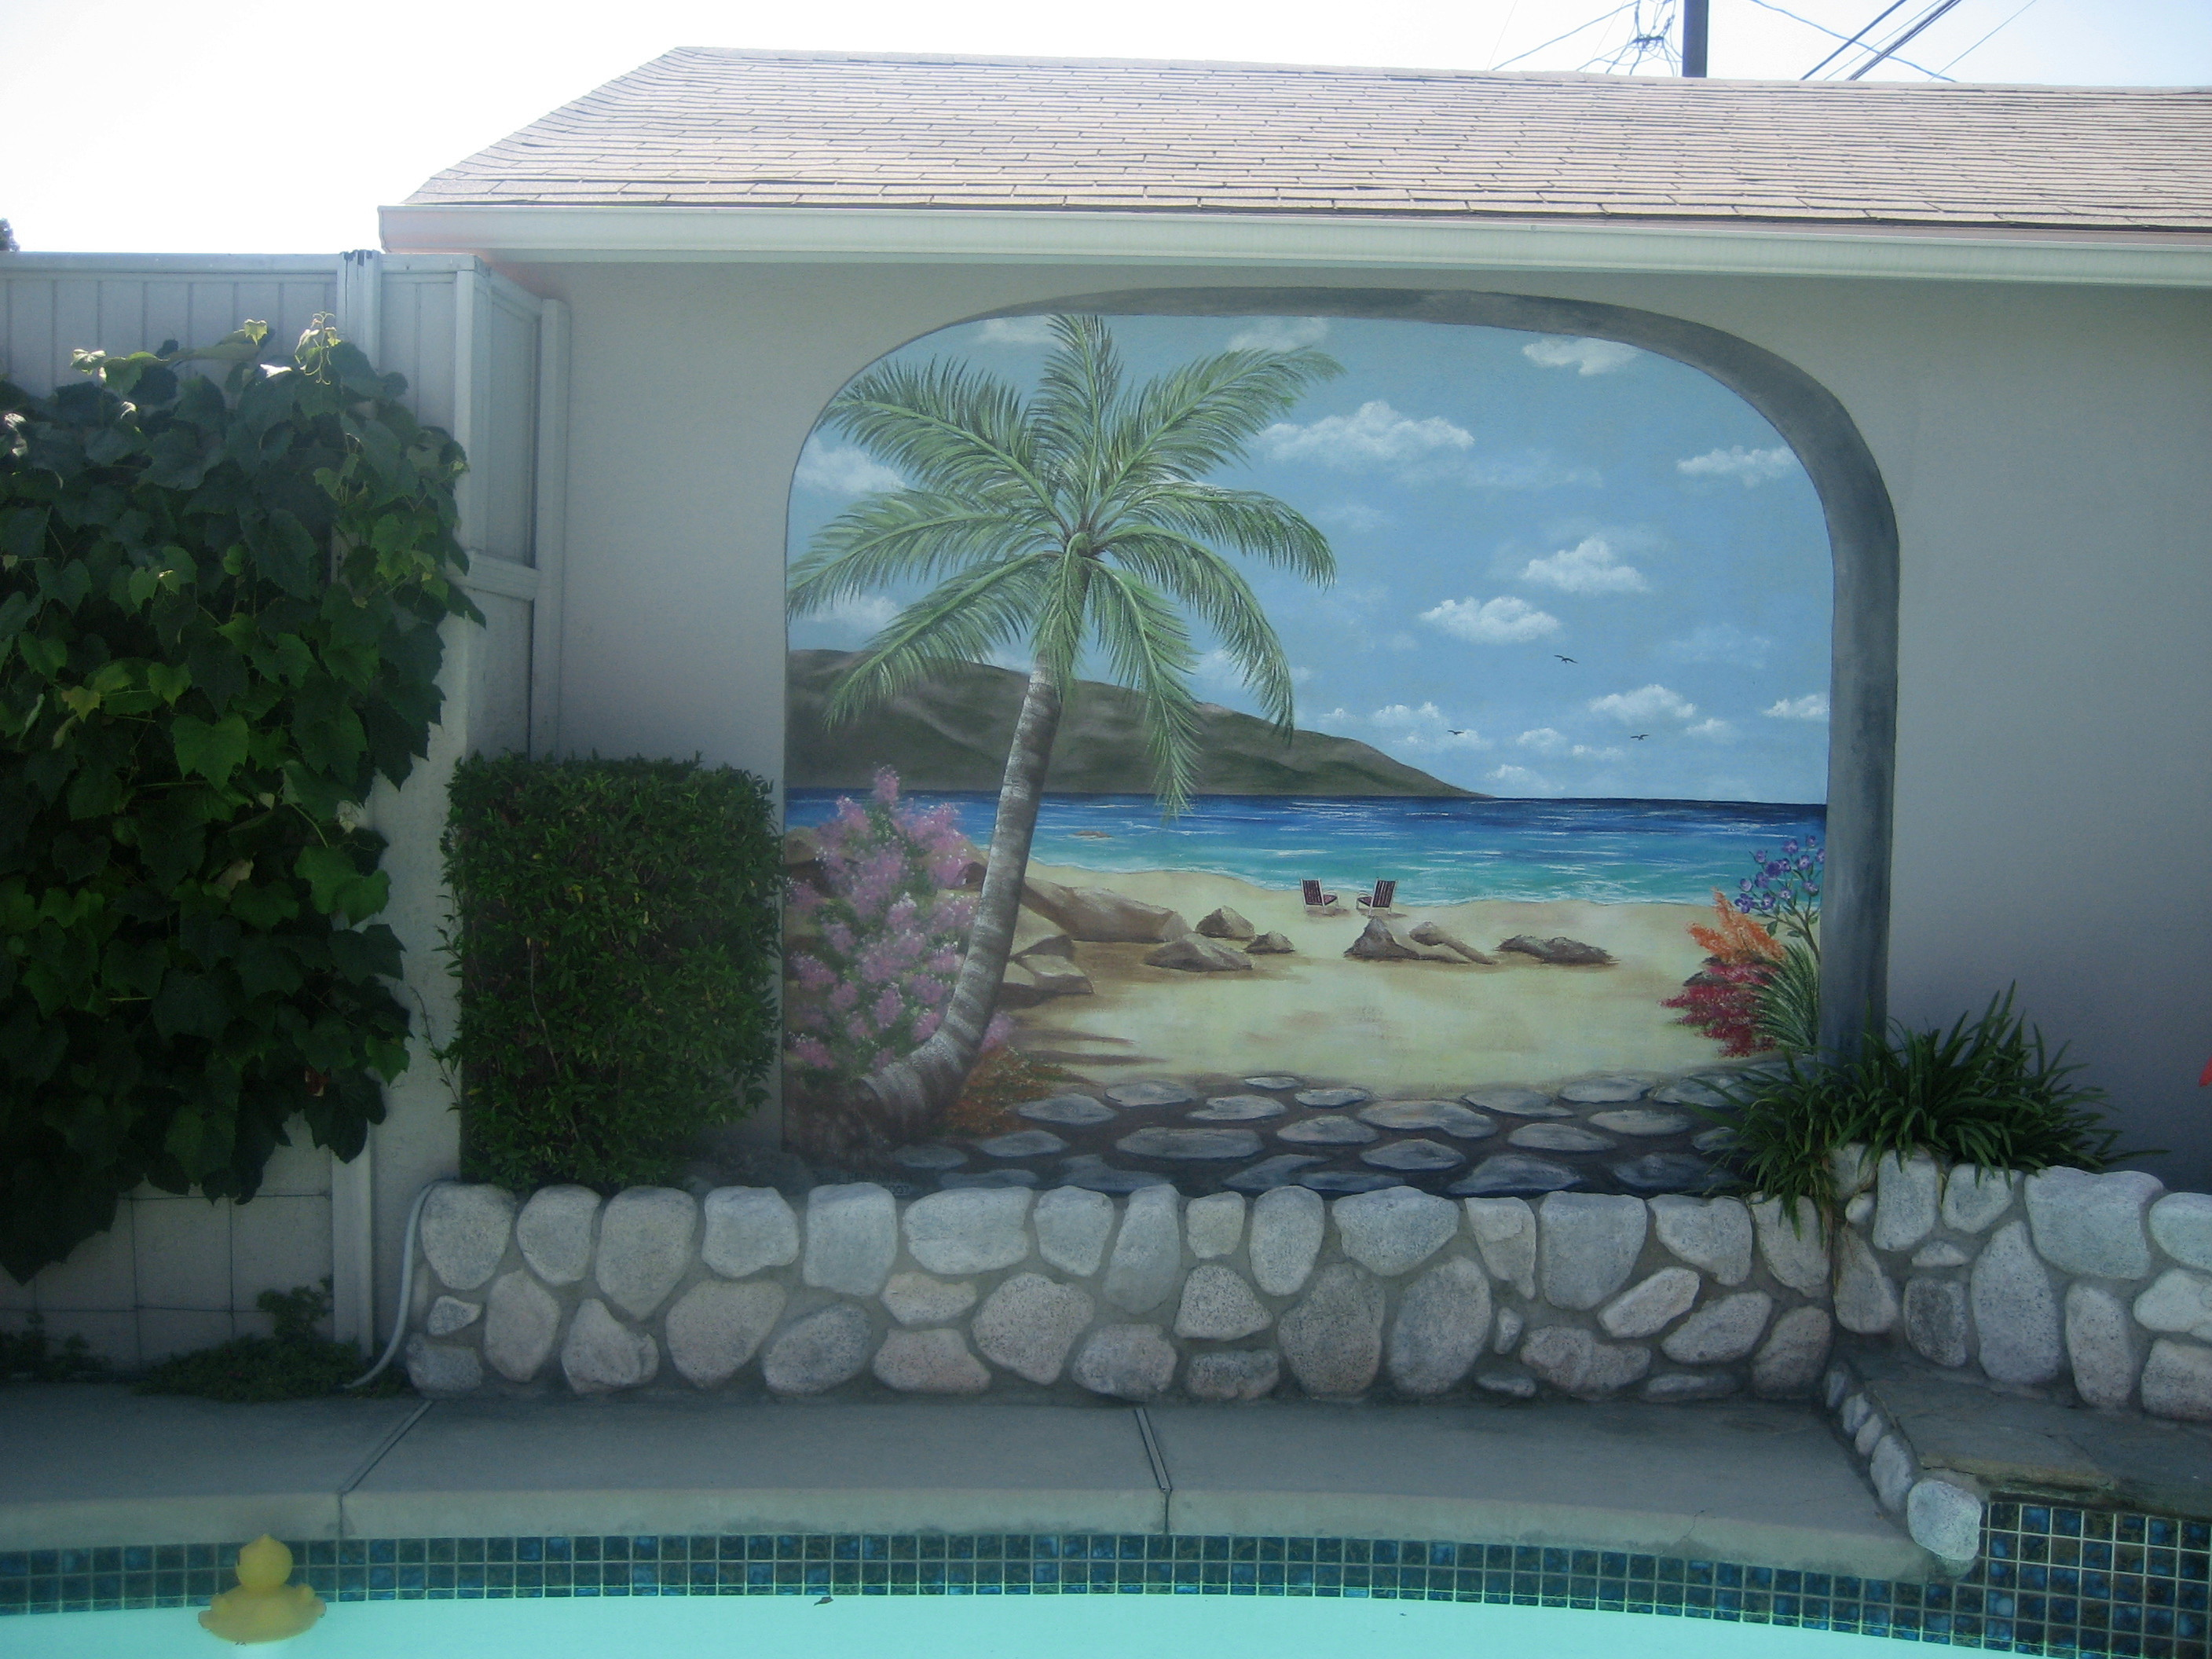 Exterior wall paint 16 ideas - Exterior wall paint design photos ...